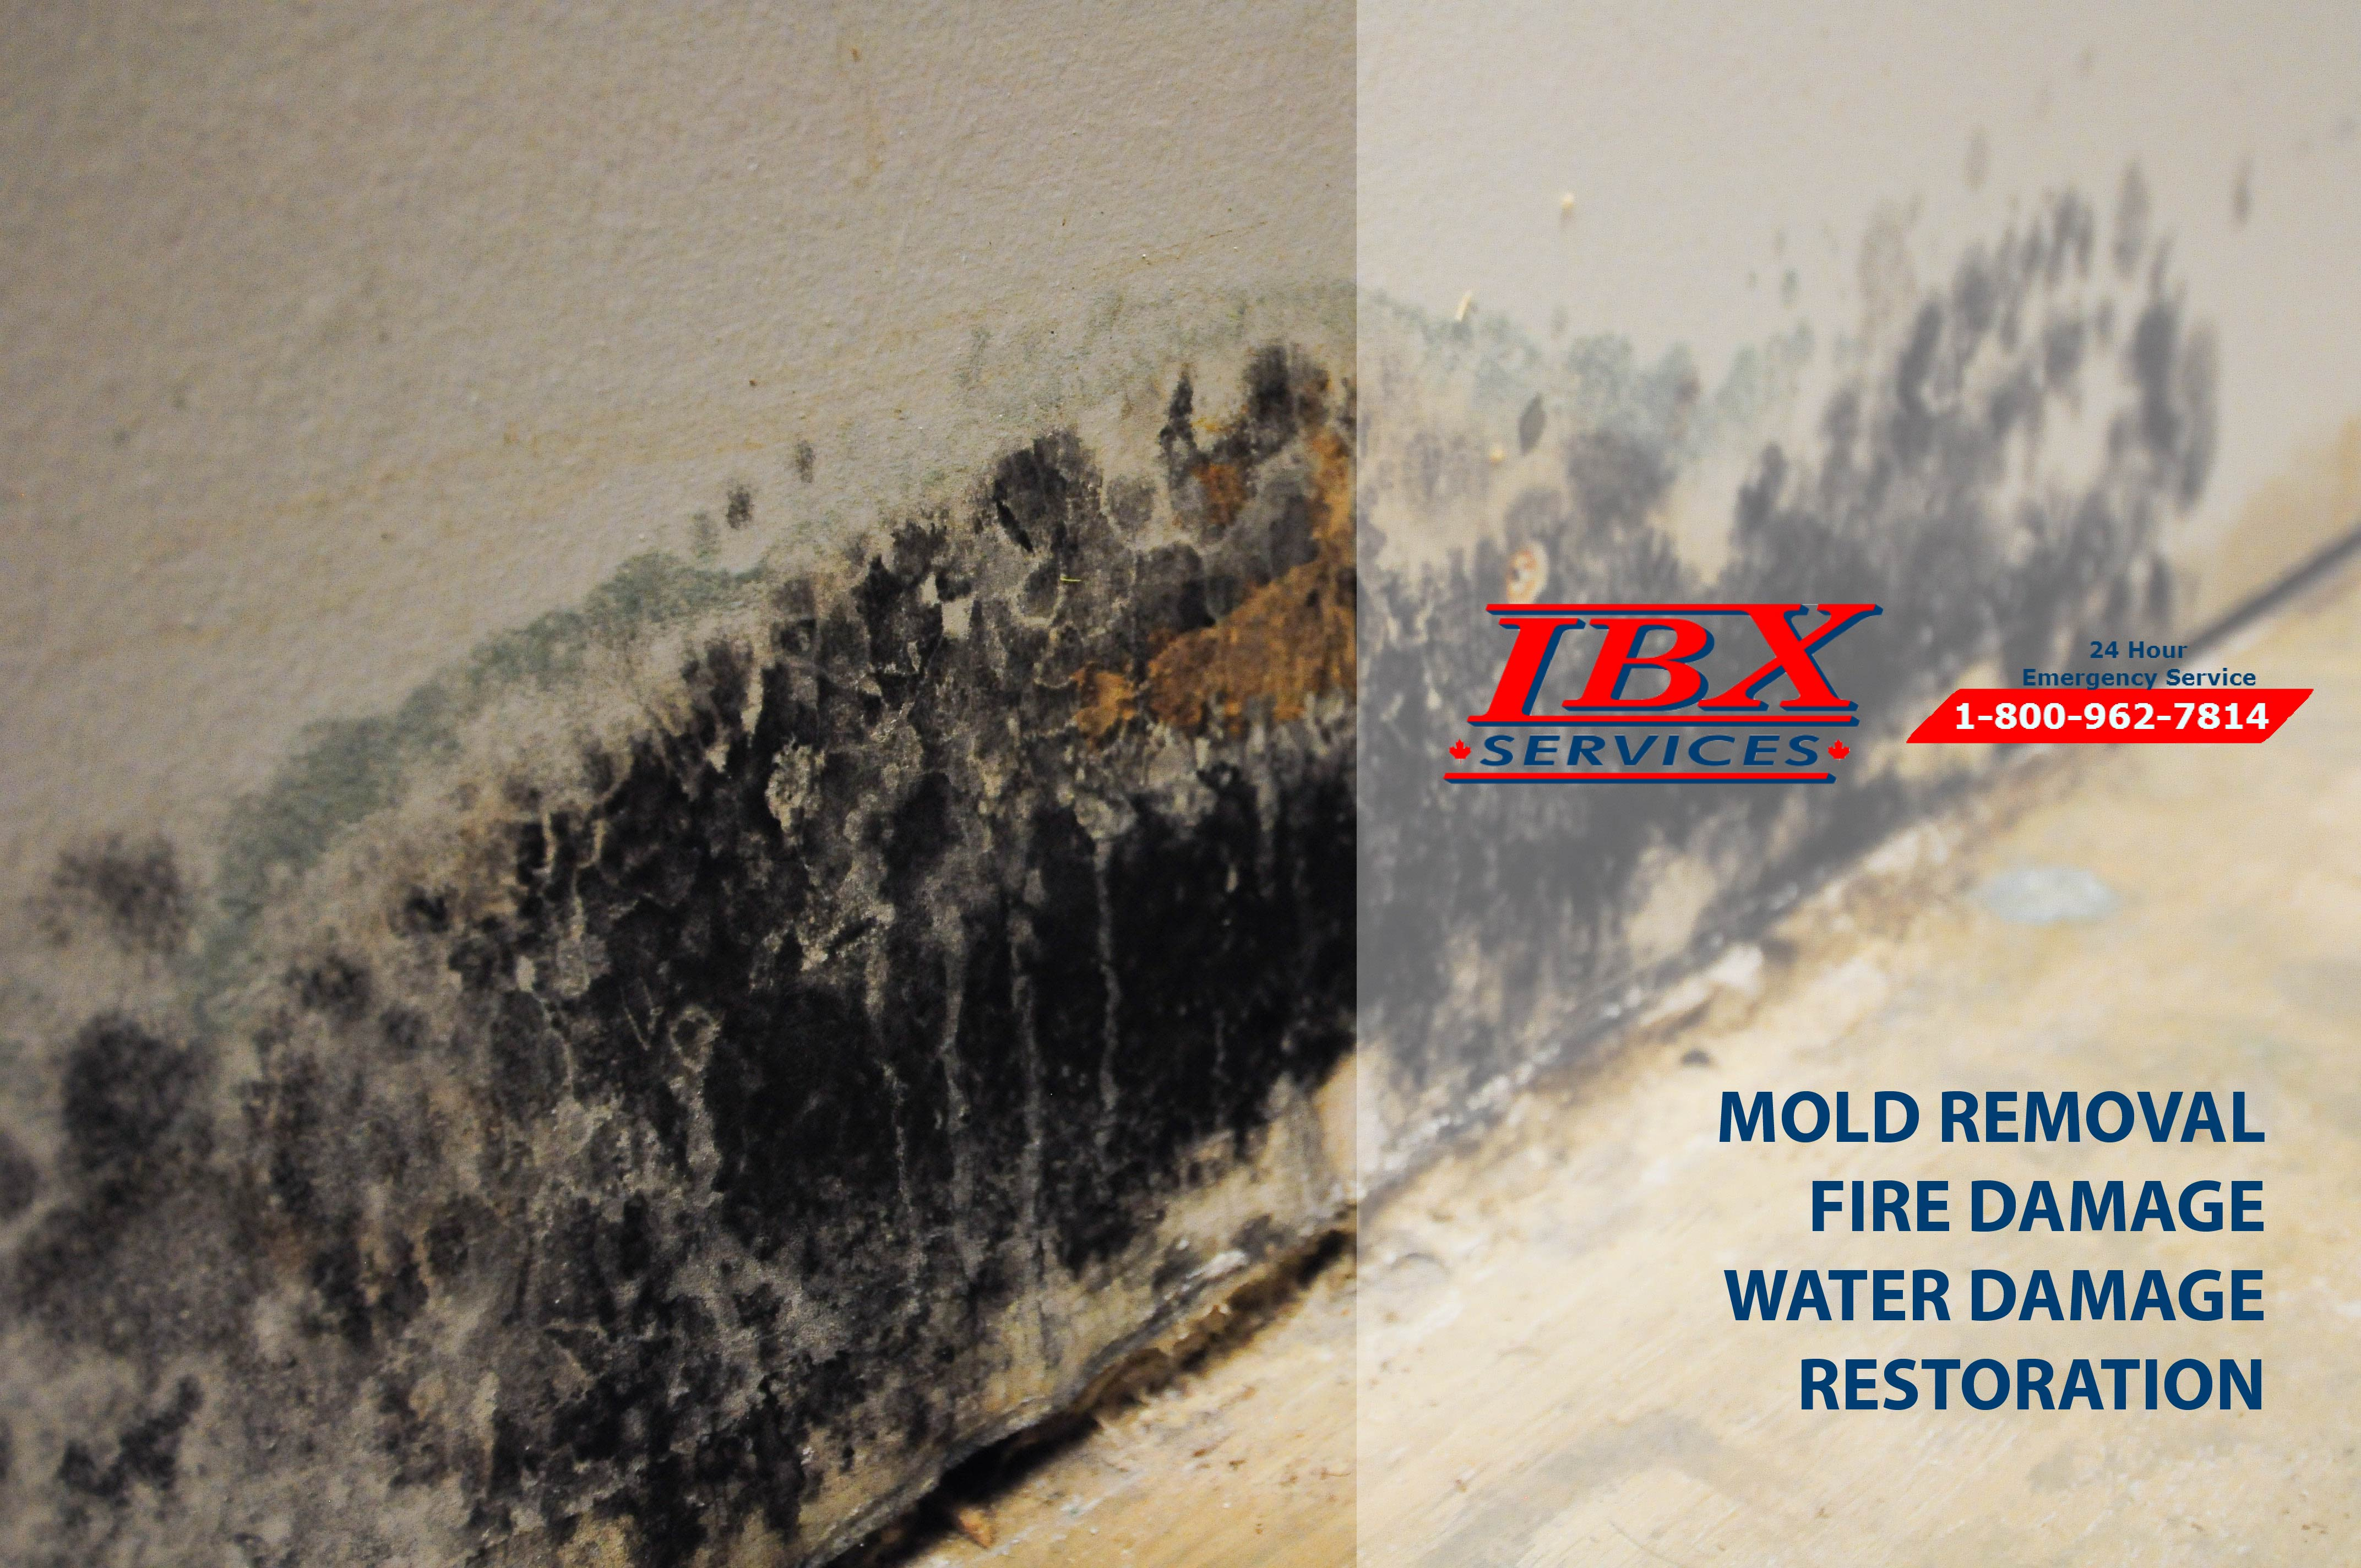 MOLD | INFORMATION ABOUT ITS CONSEQUENCES